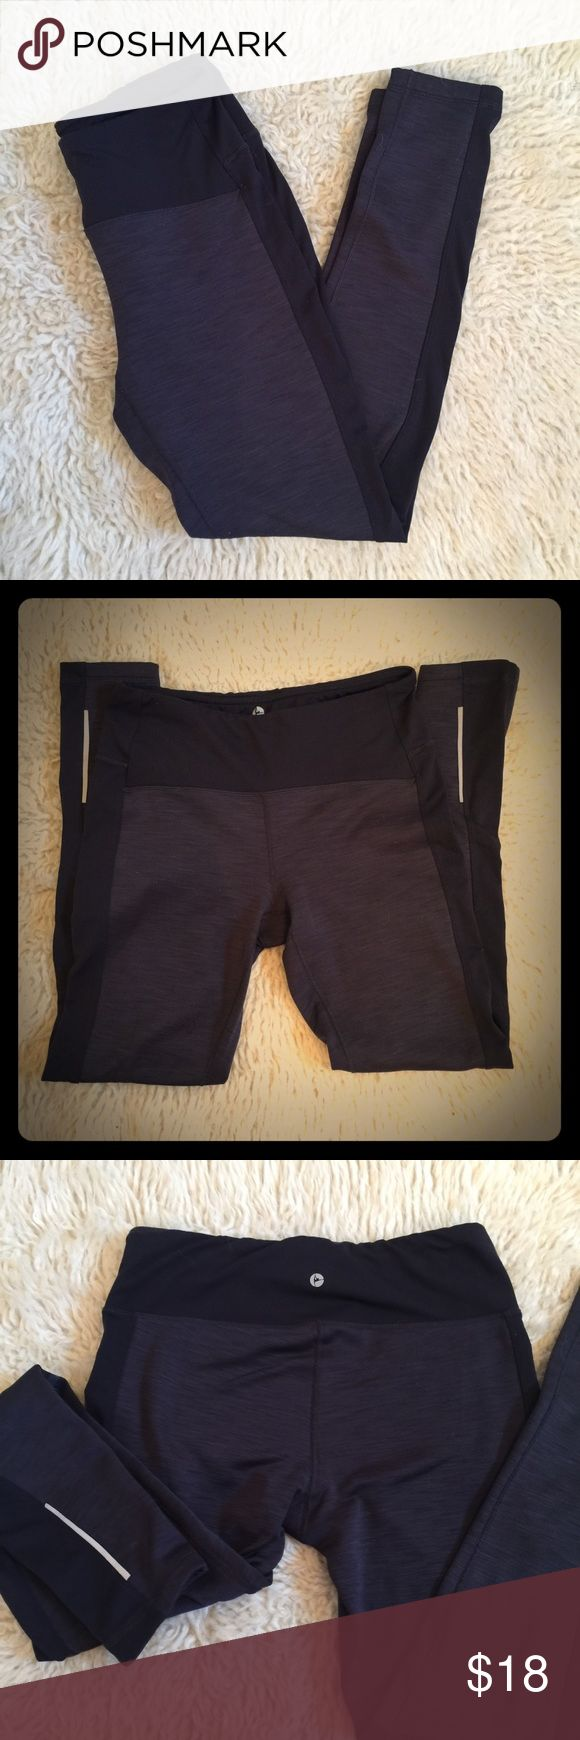 90 Degree By Reflex workout legging pants Reflex workout pants size small. Comfy and warm. Pocket hidden in waist line. Waist 26 inches hip to bottom: 35.5 inches crotch to bottom: 27 inches. Thanks for looking 90 degree by reflex  Pants Leggings